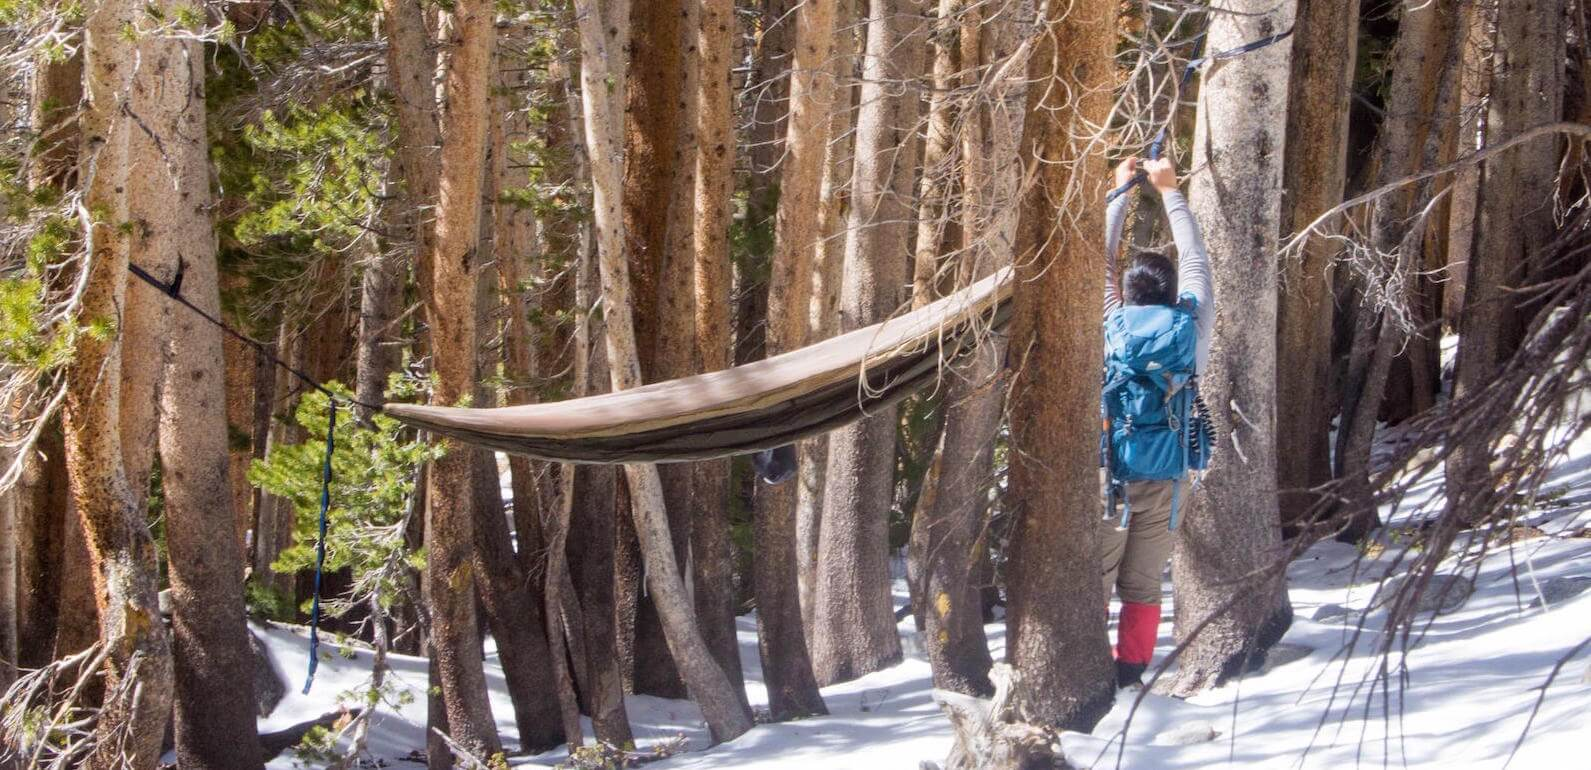 setting up a camping hammock on a backpacking trip